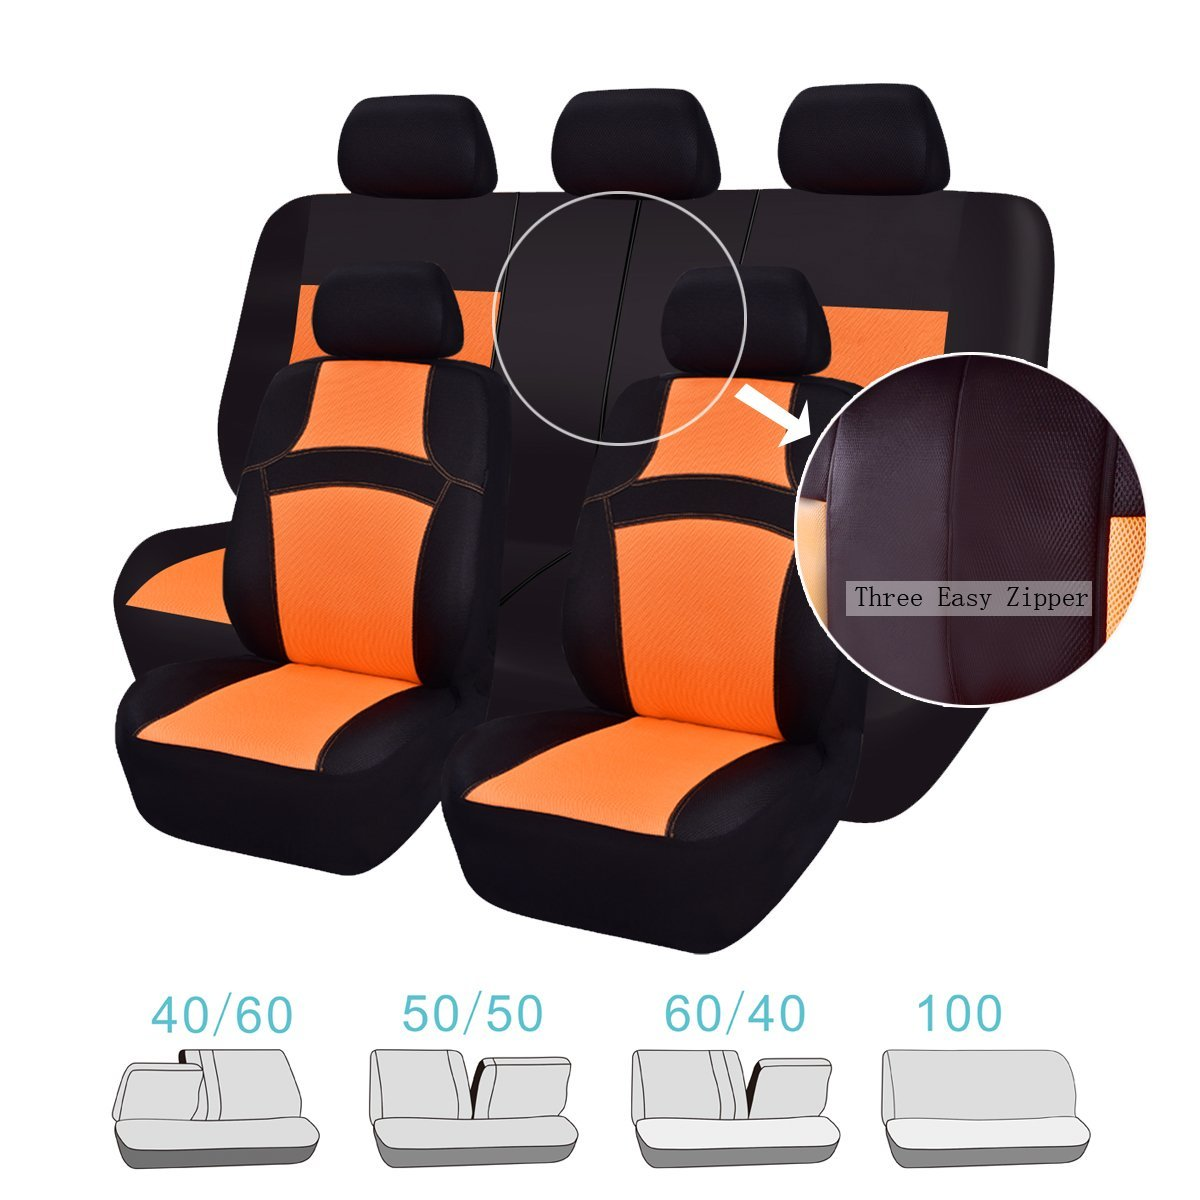 CAR PASS RAINBOW Universal Fit Car Seat Cover 14pcs, Sport Orange NEW ARRIVAL 100/% Breathable With 5mm Composite Sponge Inside,Airbag Compatible